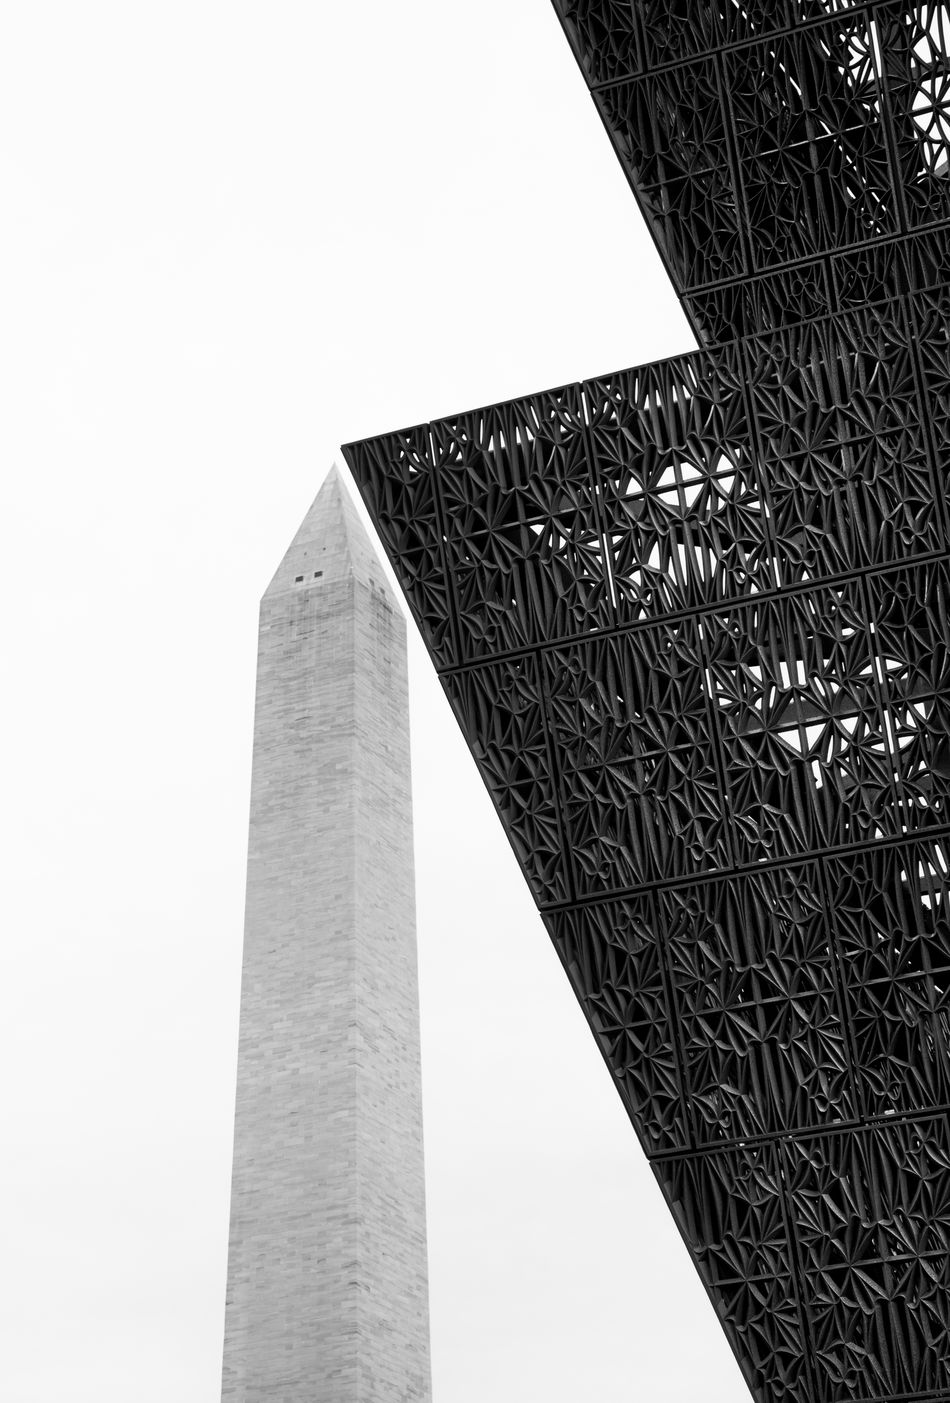 Washington Monument and the National Museum of African American History and Culture African American African American Museum Architecture B&w B&w Photography Black & White Black And White Building Exterior Built Structure City Day Low Angle View Metalwork Monument Museum National Museum Of African American History And Culture No People Outdoors Sky Skyscraper Smithsonian Washington Monument